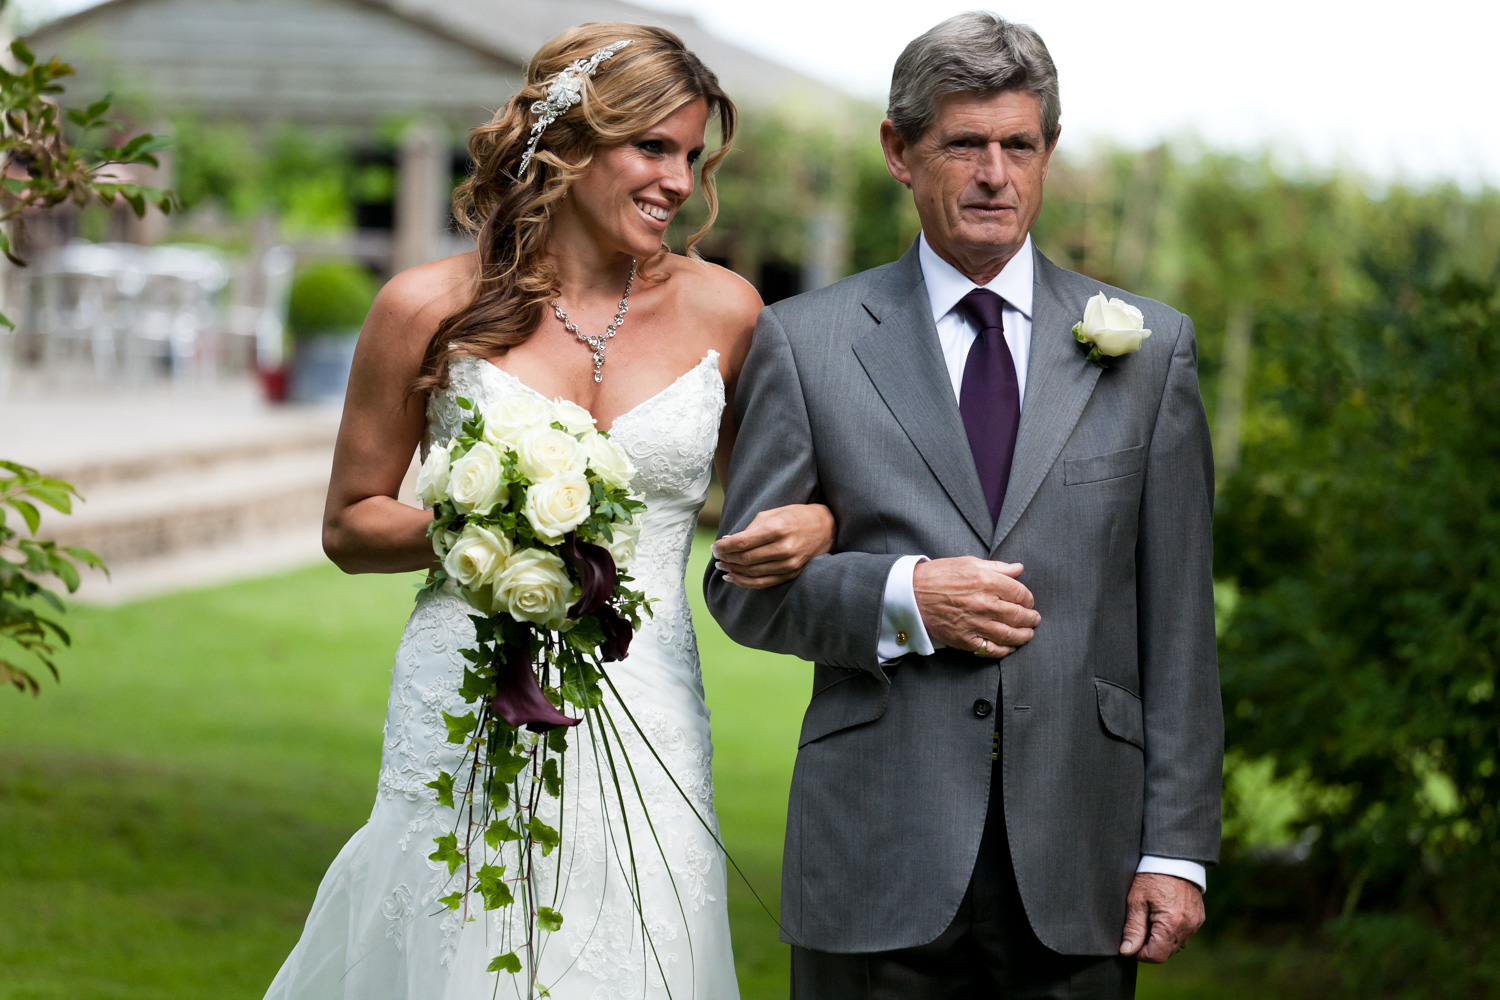 Copy of Bride and her father walking down the aisle.